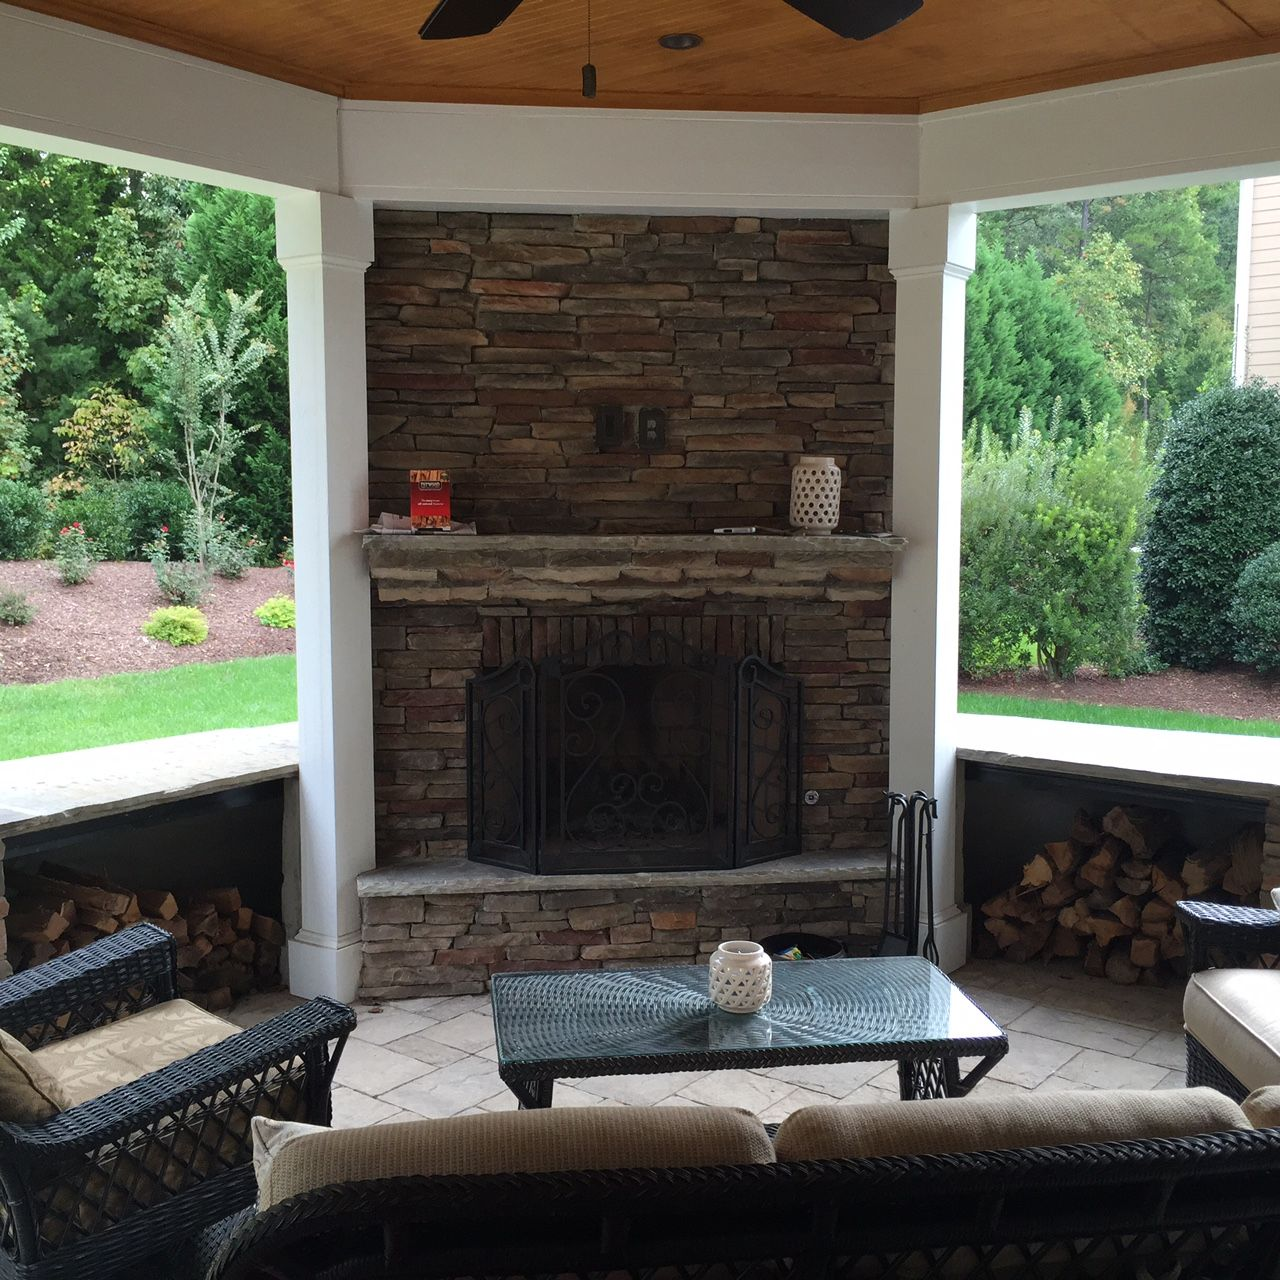 Chapel Hill Stone Outdoor Fireplace on Open Porch - Design ...